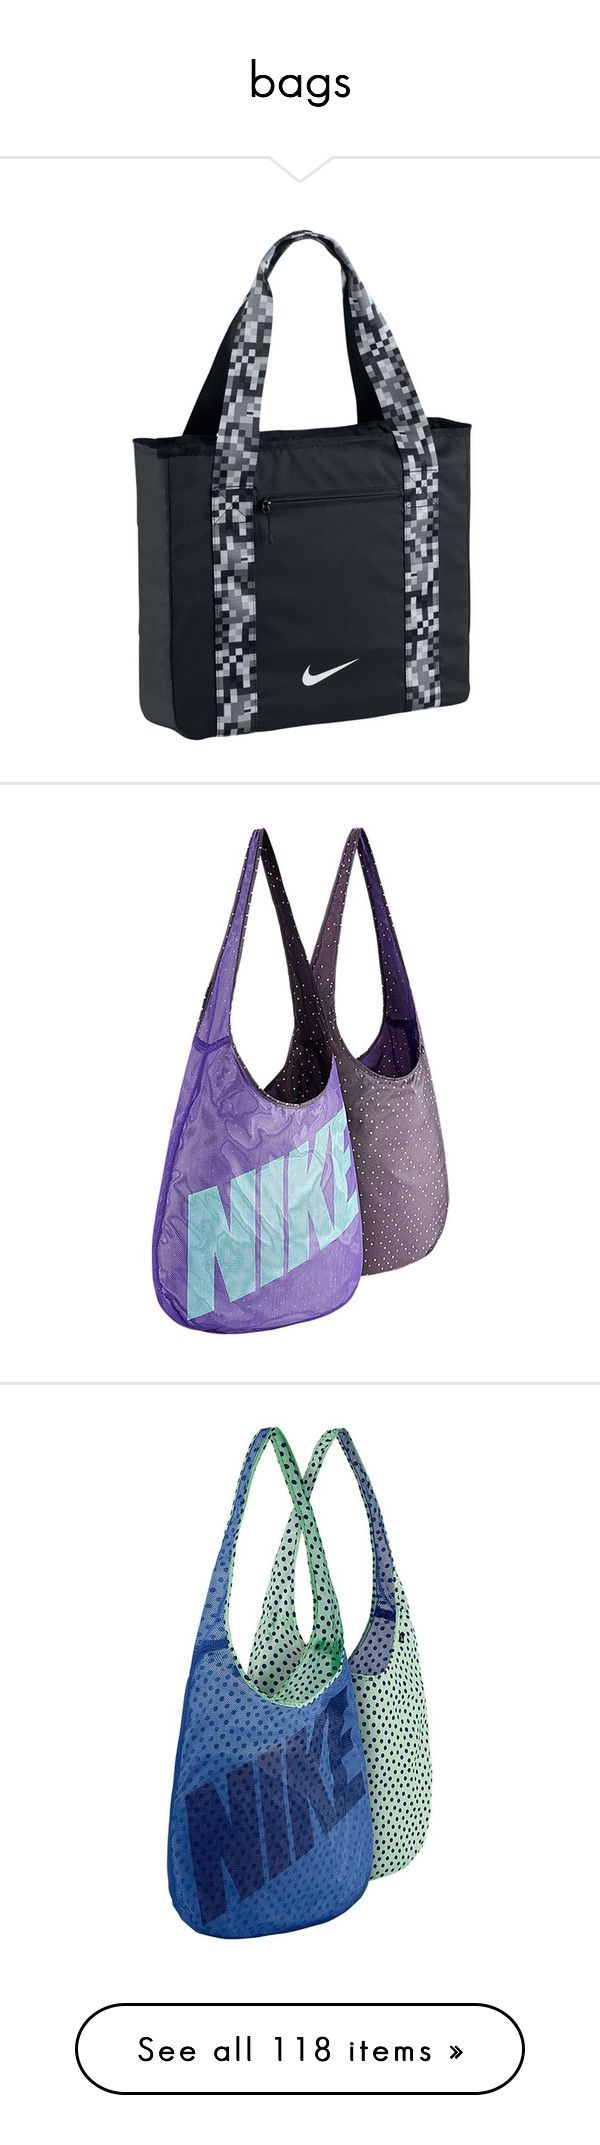 """bags"" by welcometoweirdschool on Polyvore featuring bags, handbags, tote bags, nike tote, nike handbags, embellished handbags, nike, nike tote bag, shoulder bags and purple"